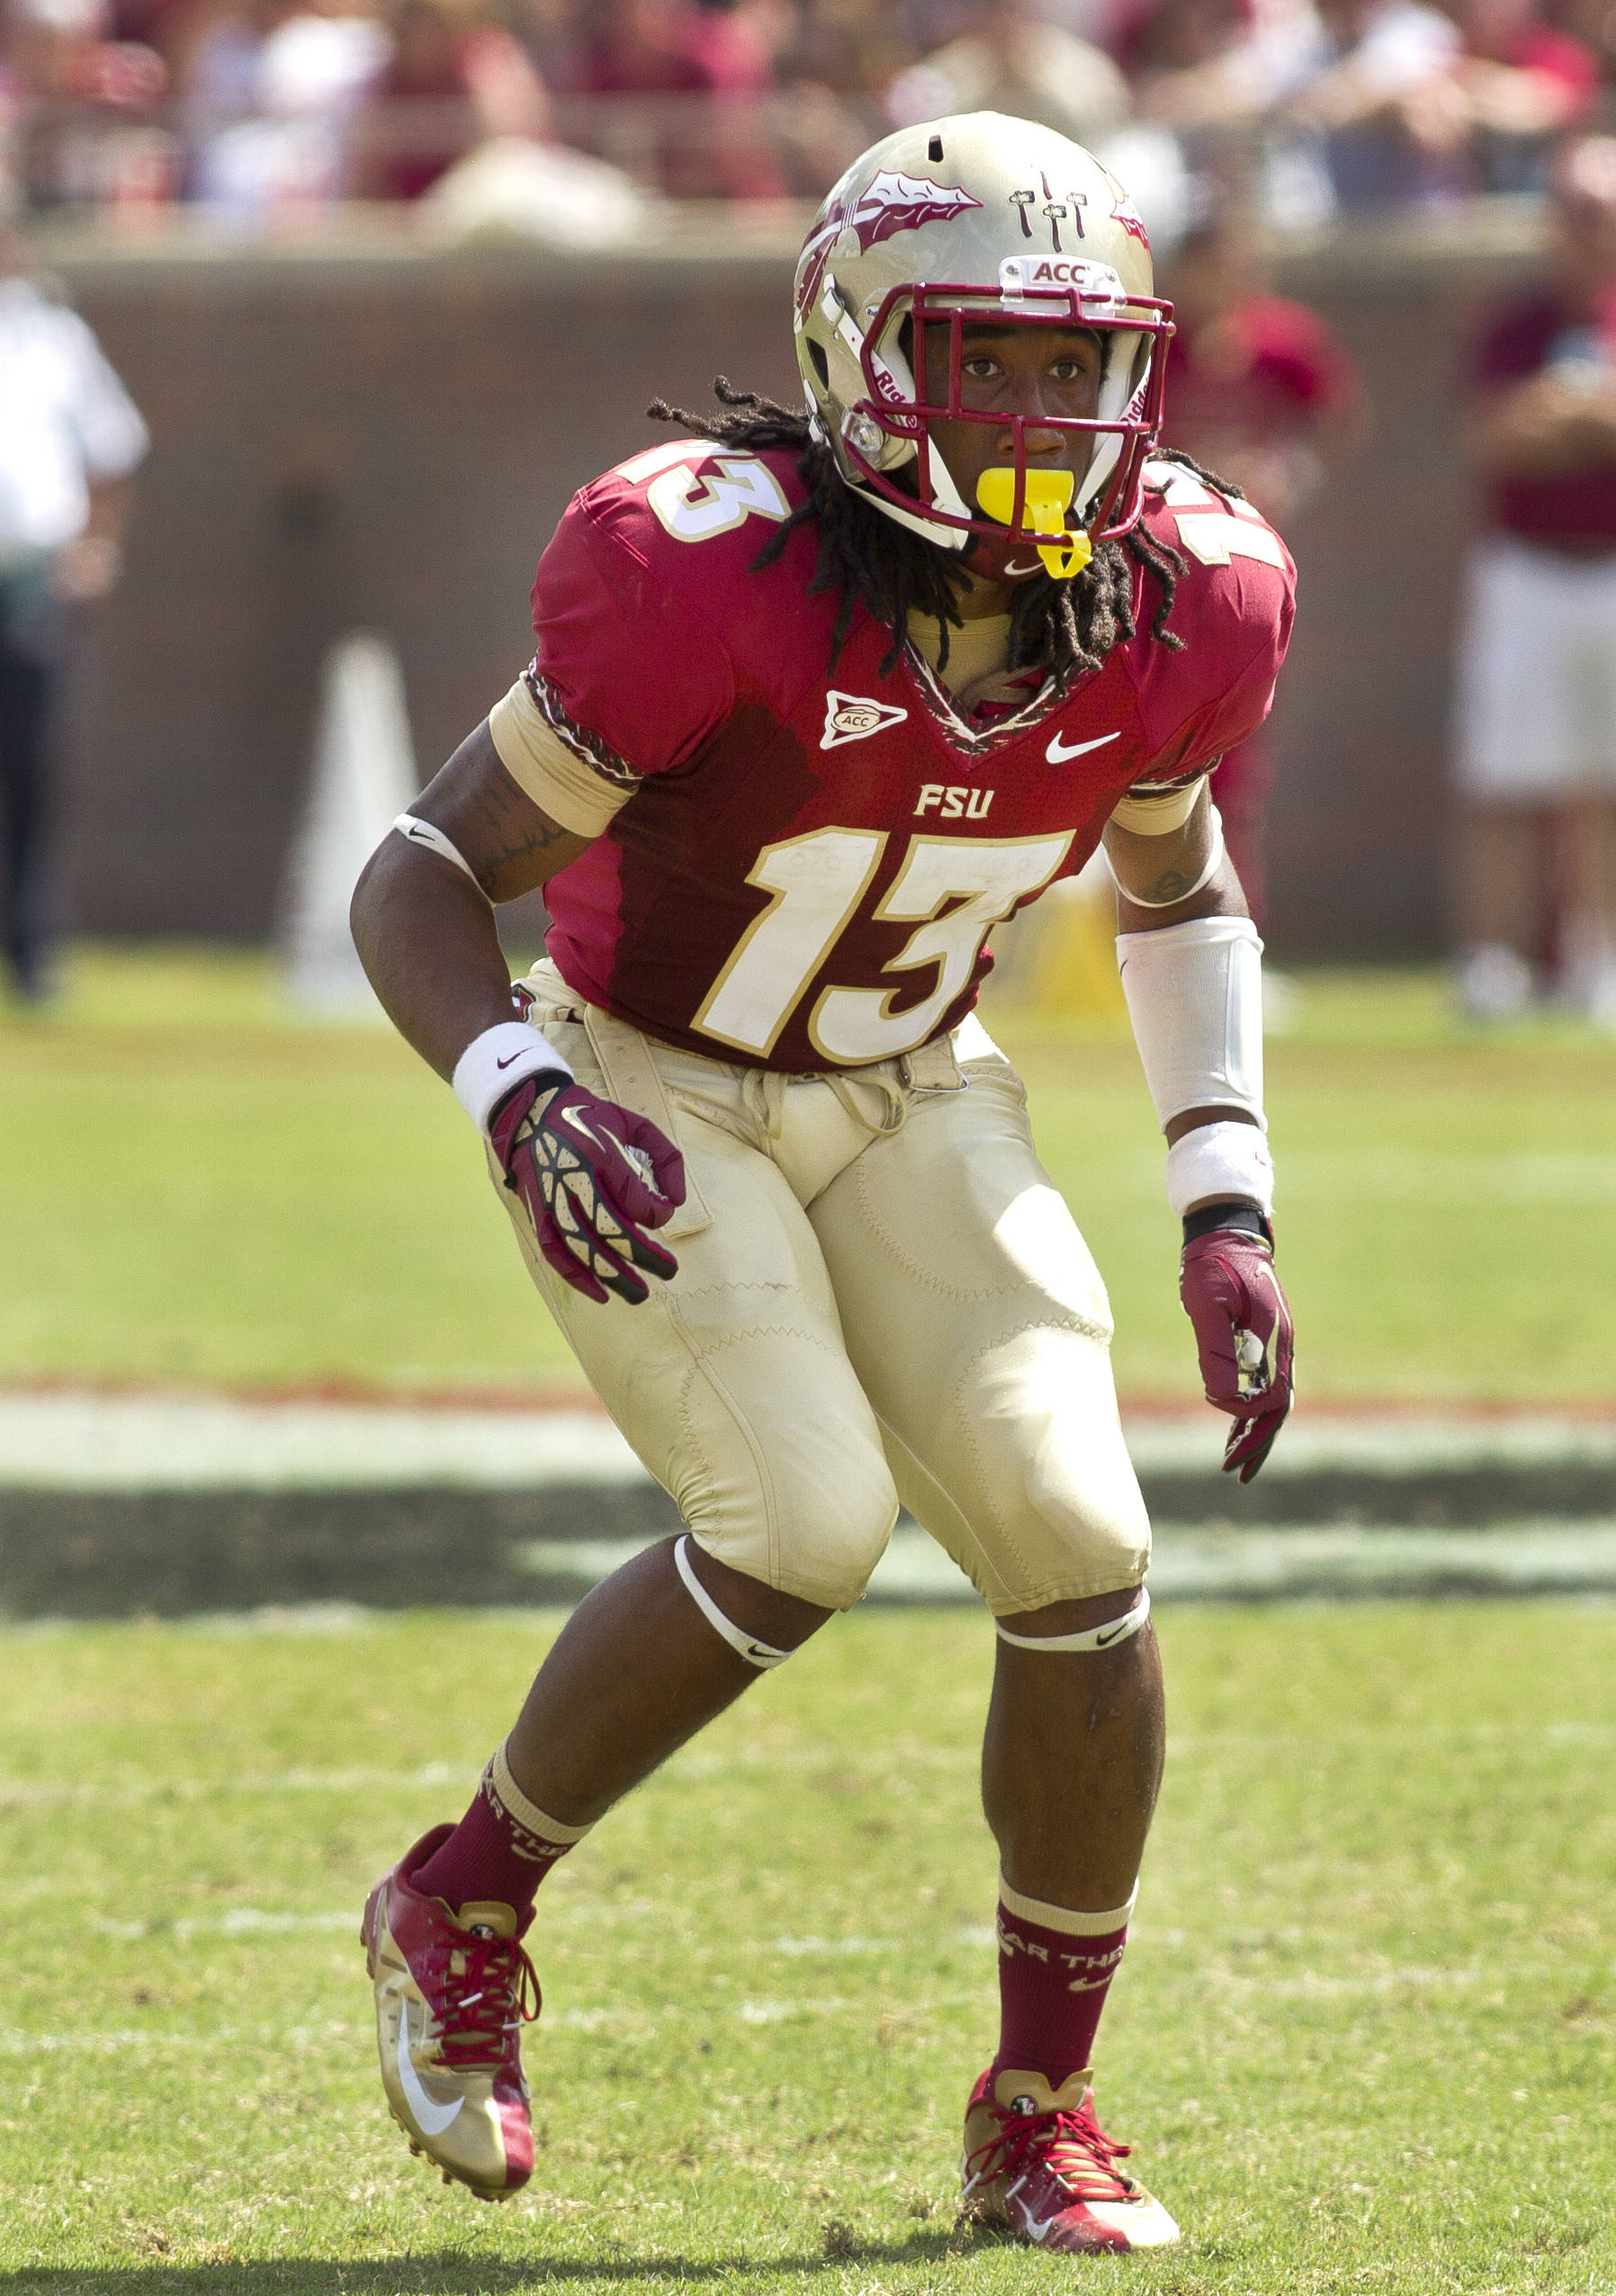 Ronald Darby (13) watching the play initiate, FSU vs Wake Forest, 9/15/12 (Photo by Steve Musco)